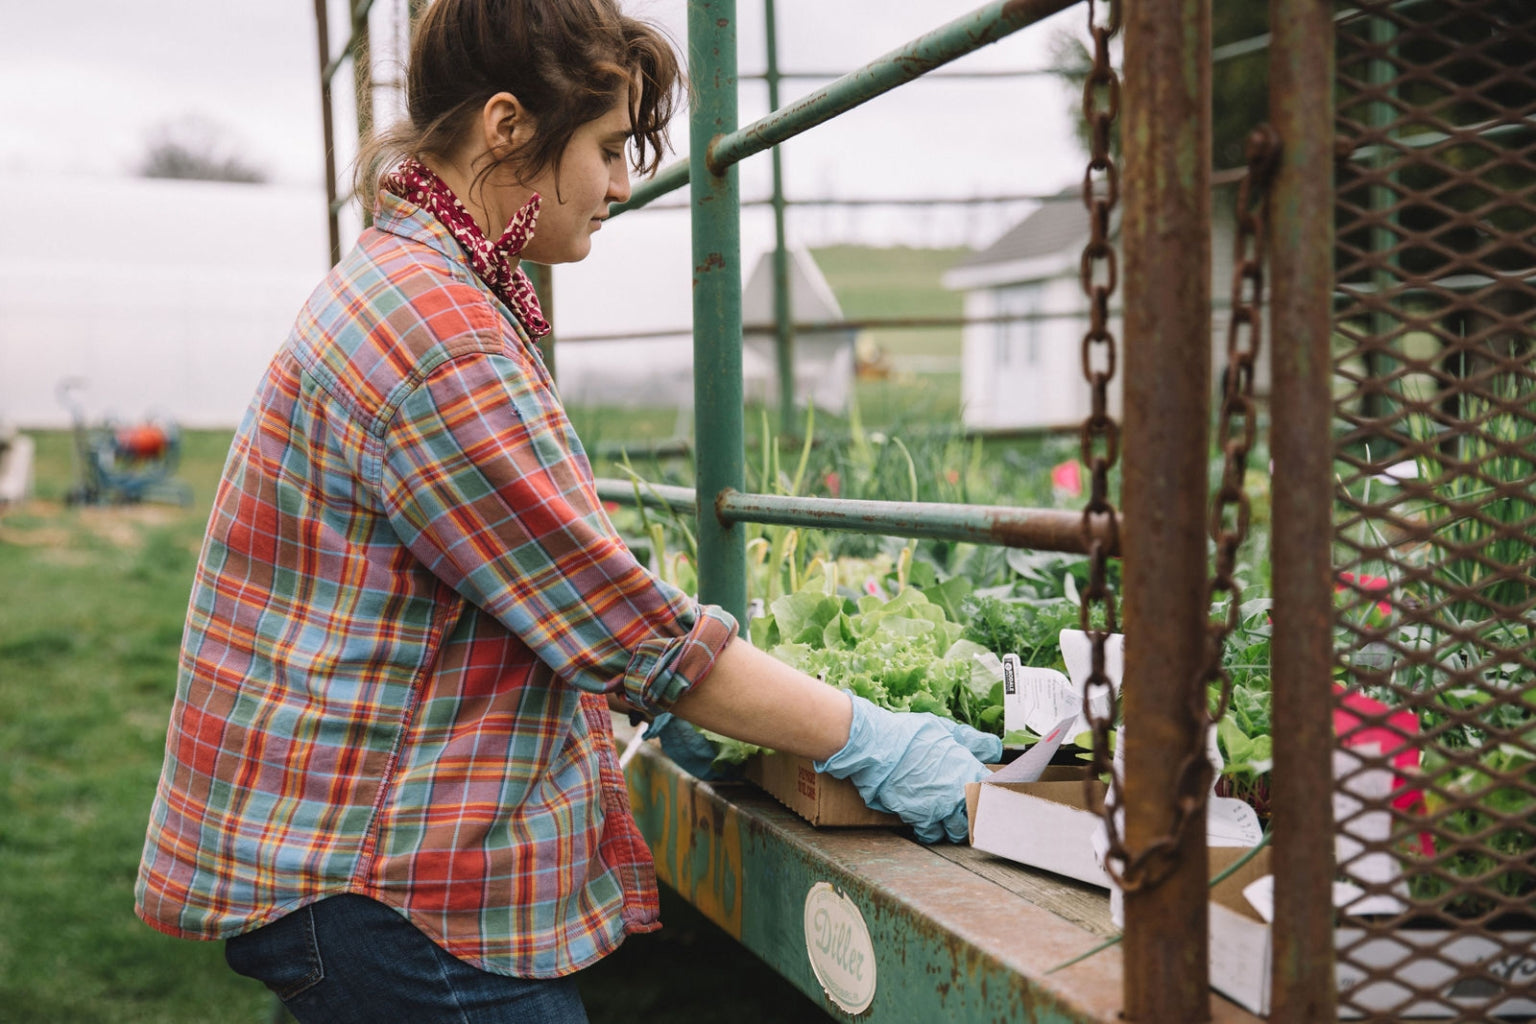 Rodale intern Bree Hersch gets her hands dirty during her daily chores around Rodale's main farm campus – kind of.